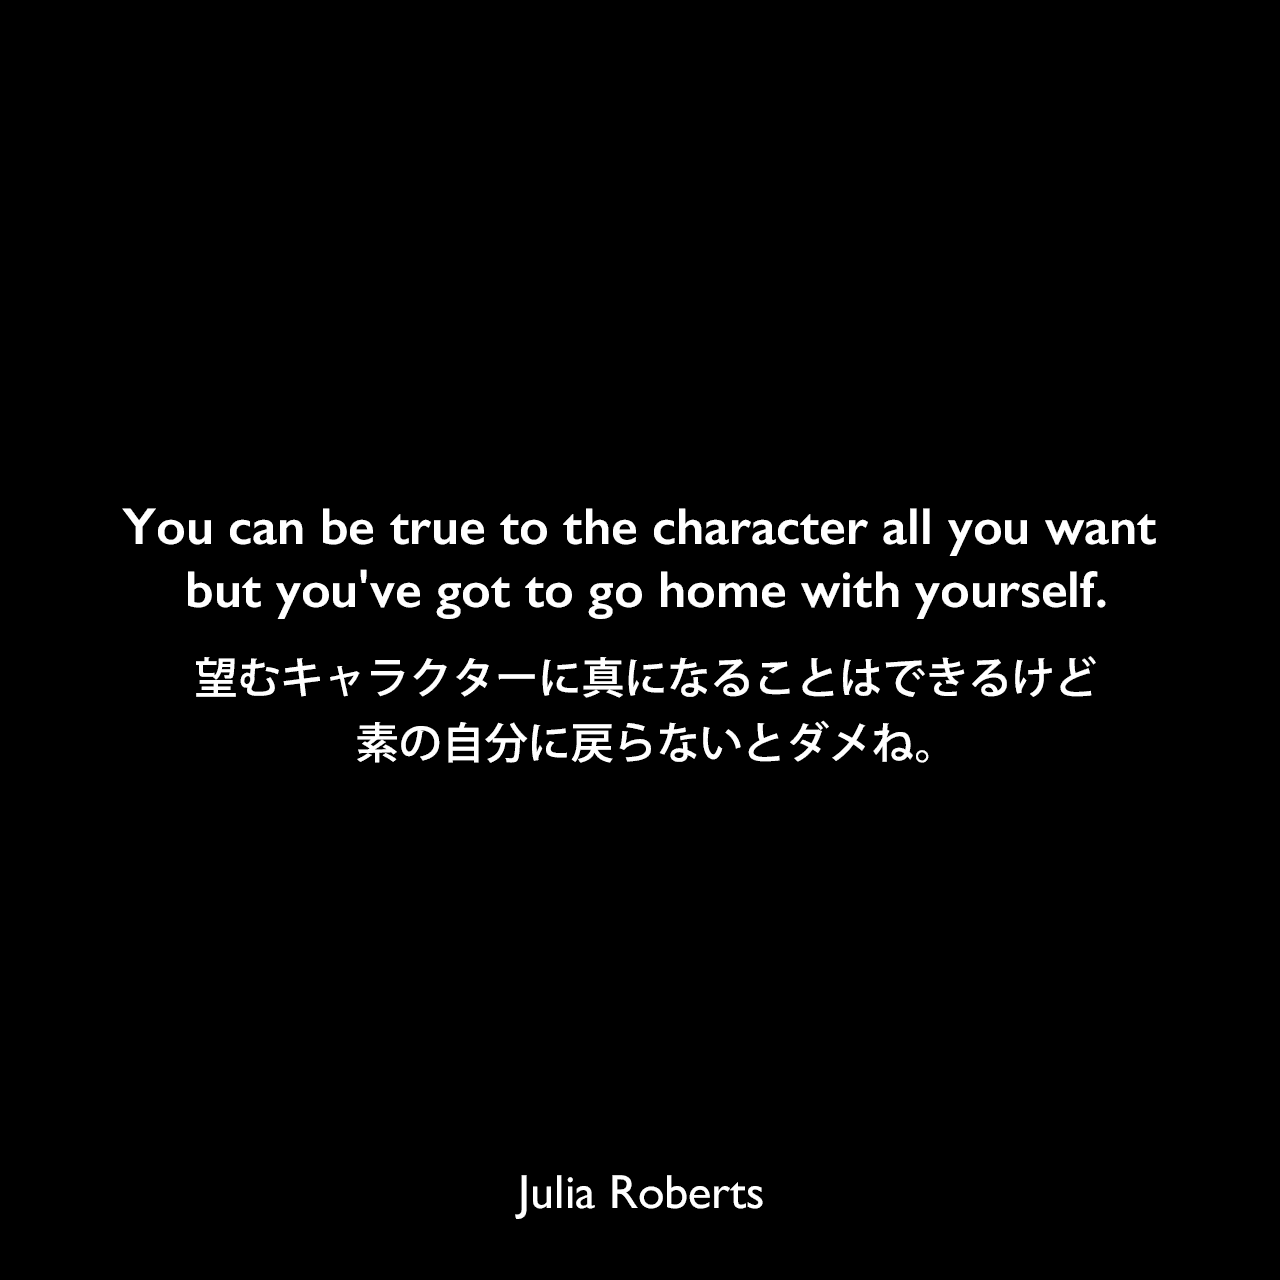 You can be true to the character all you want but you've got to go home with yourself.望むキャラクターに真になることはできるけど、素の自分に戻らないとダメね。Julia Roberts